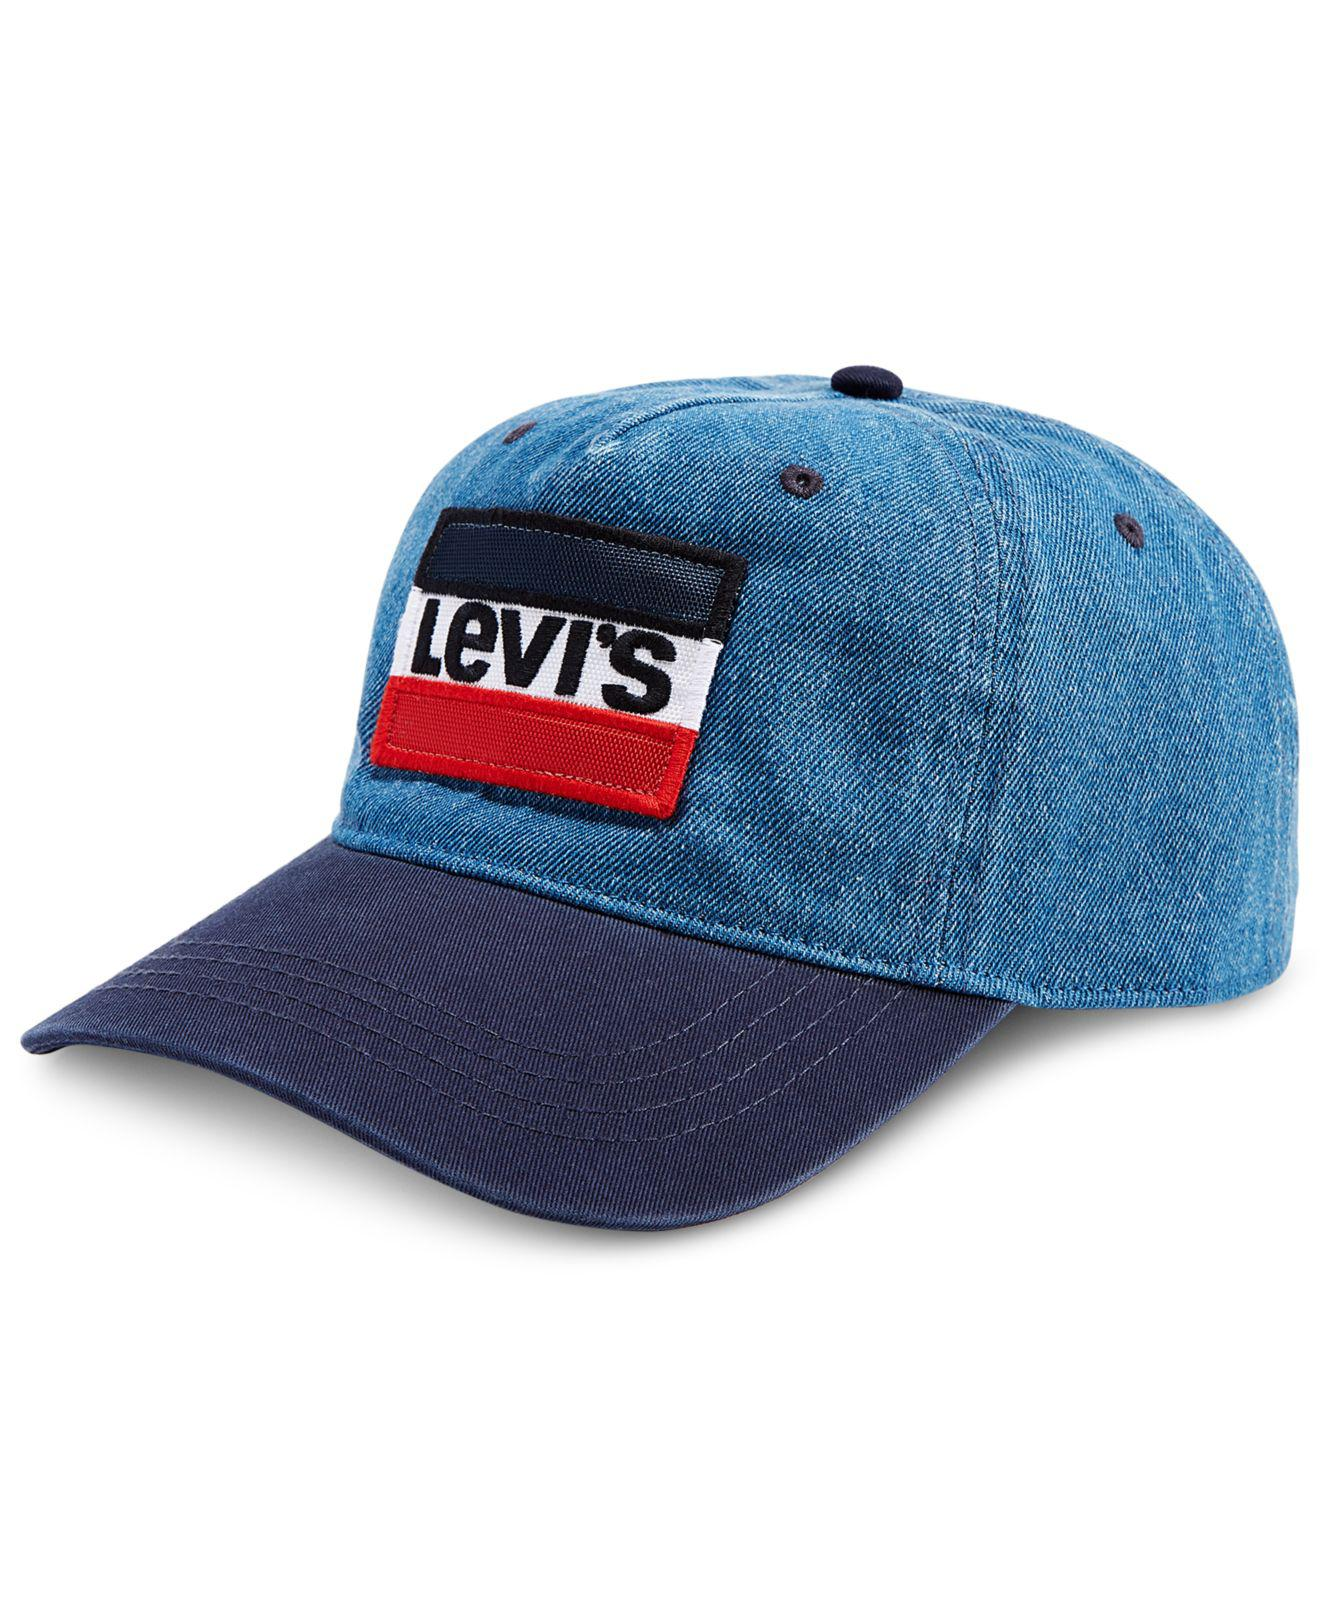 ad7ce4960adc8 Levi s Denim Olympic Patch Baseball Cap in Blue for Men - Lyst